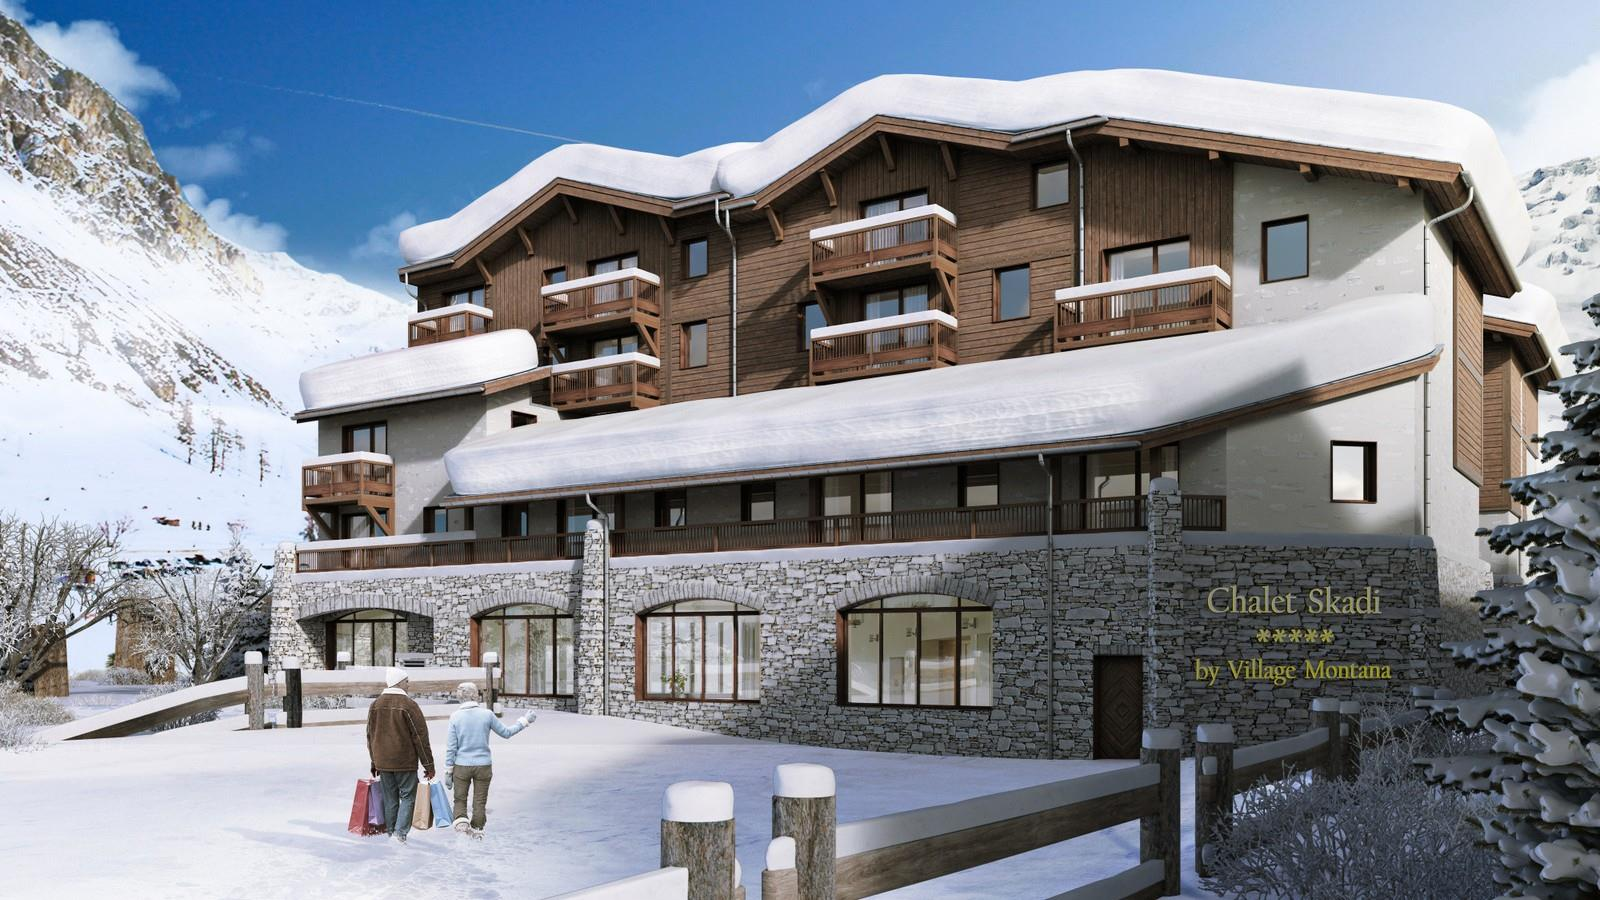 Chalet Skadi 3 bedroom apartment